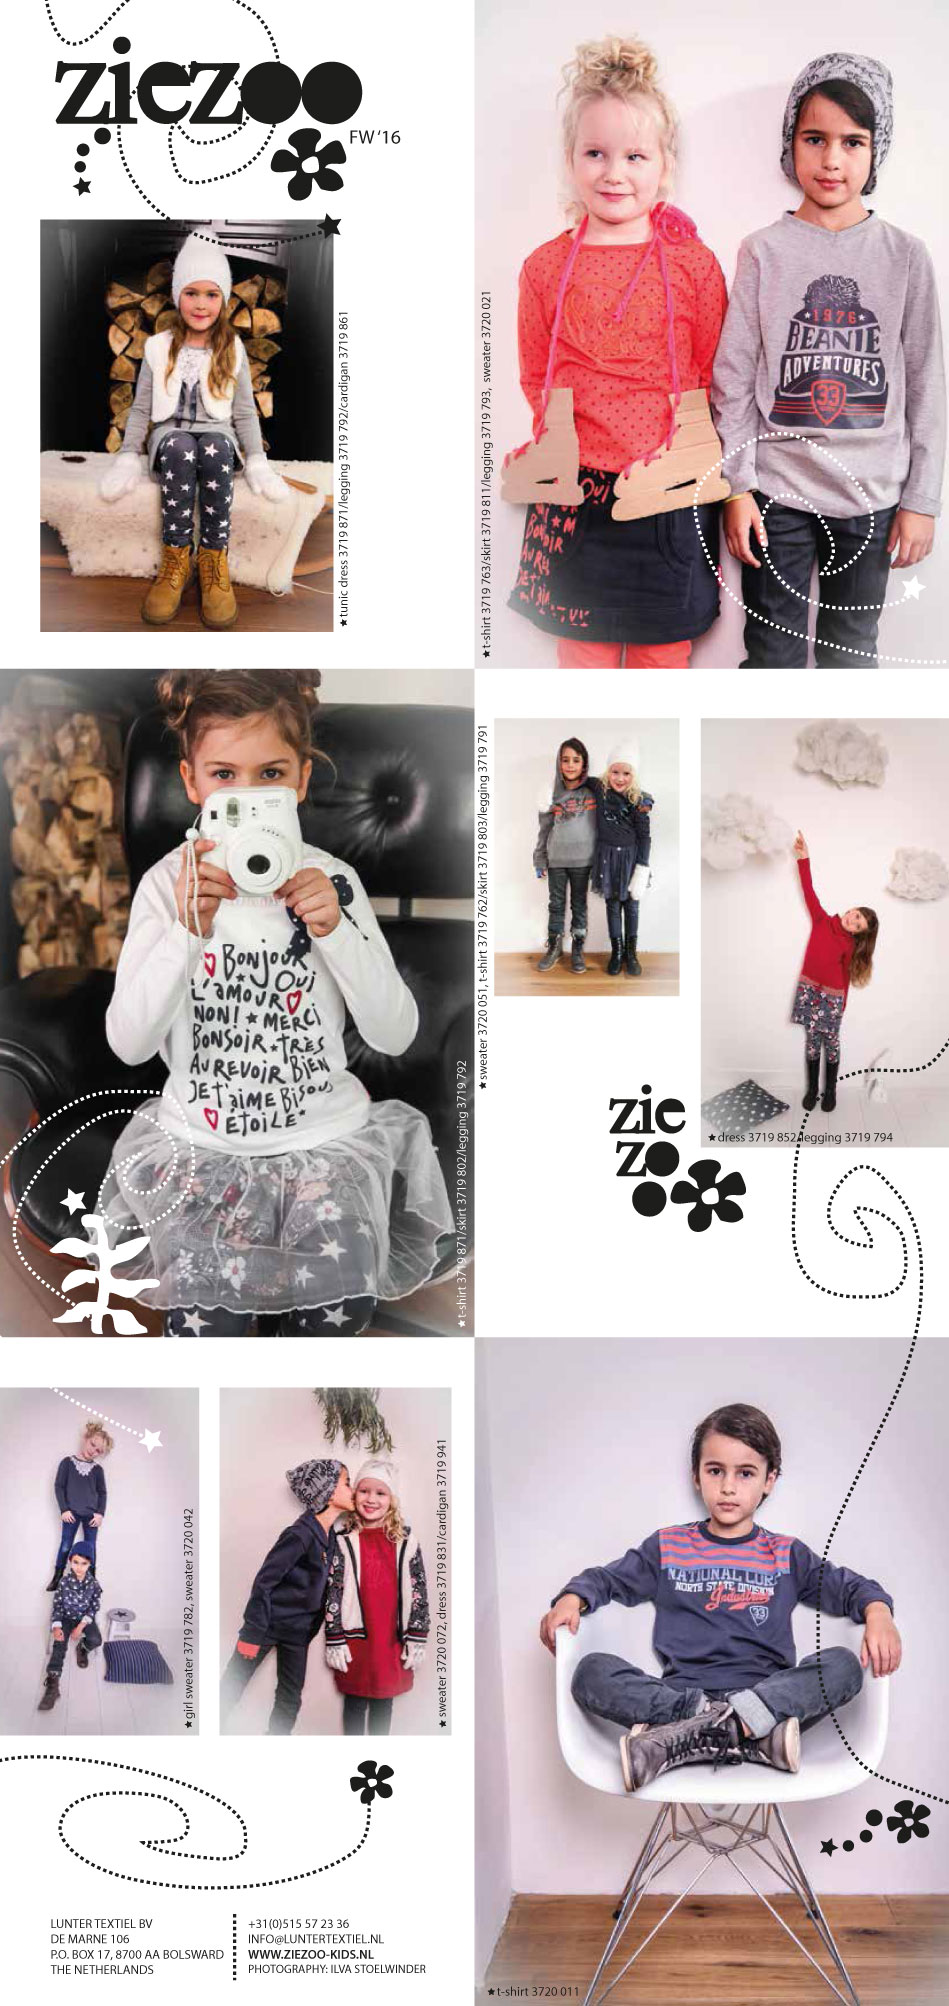 Design-Deluxe-Fashion-Design-Ziezoo-Baby-Winter2016-007